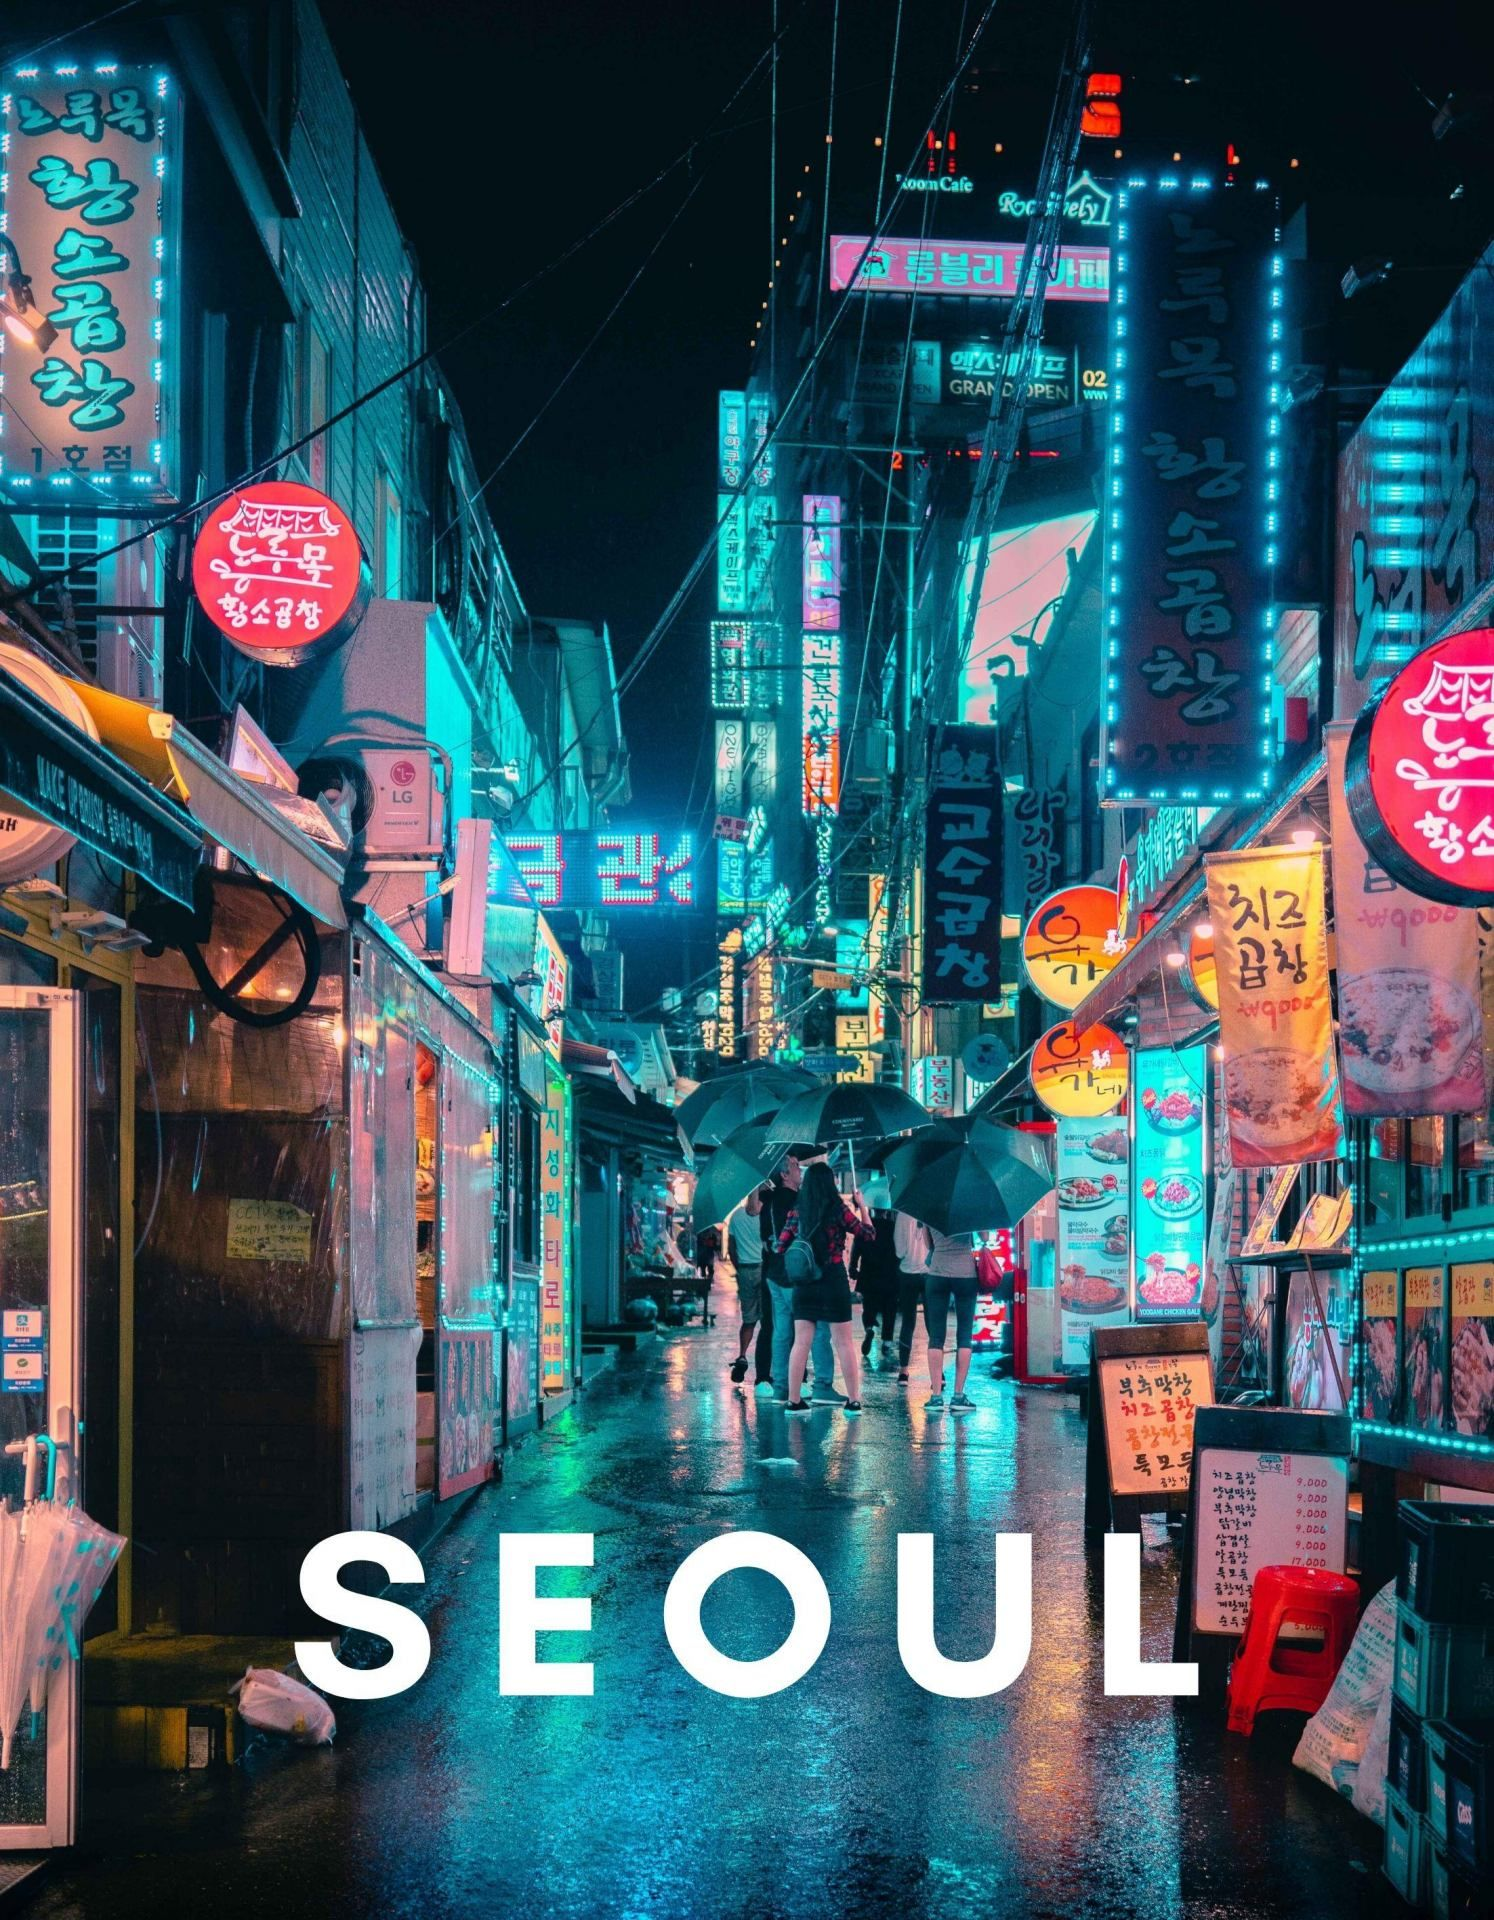 Best spots in Seoul, directions and maps to reach them without too much trouble and some practical tips learned from practical experience that you might find handy.         #seoul         #lotteworldtower         #lottetower         #bukchonhanok         #jogyesatemple         #iwhamuralvillage         #gwangjangmarket         #gwangjang         #coexmall    #starfieldlibrary          #KOKOMOGO